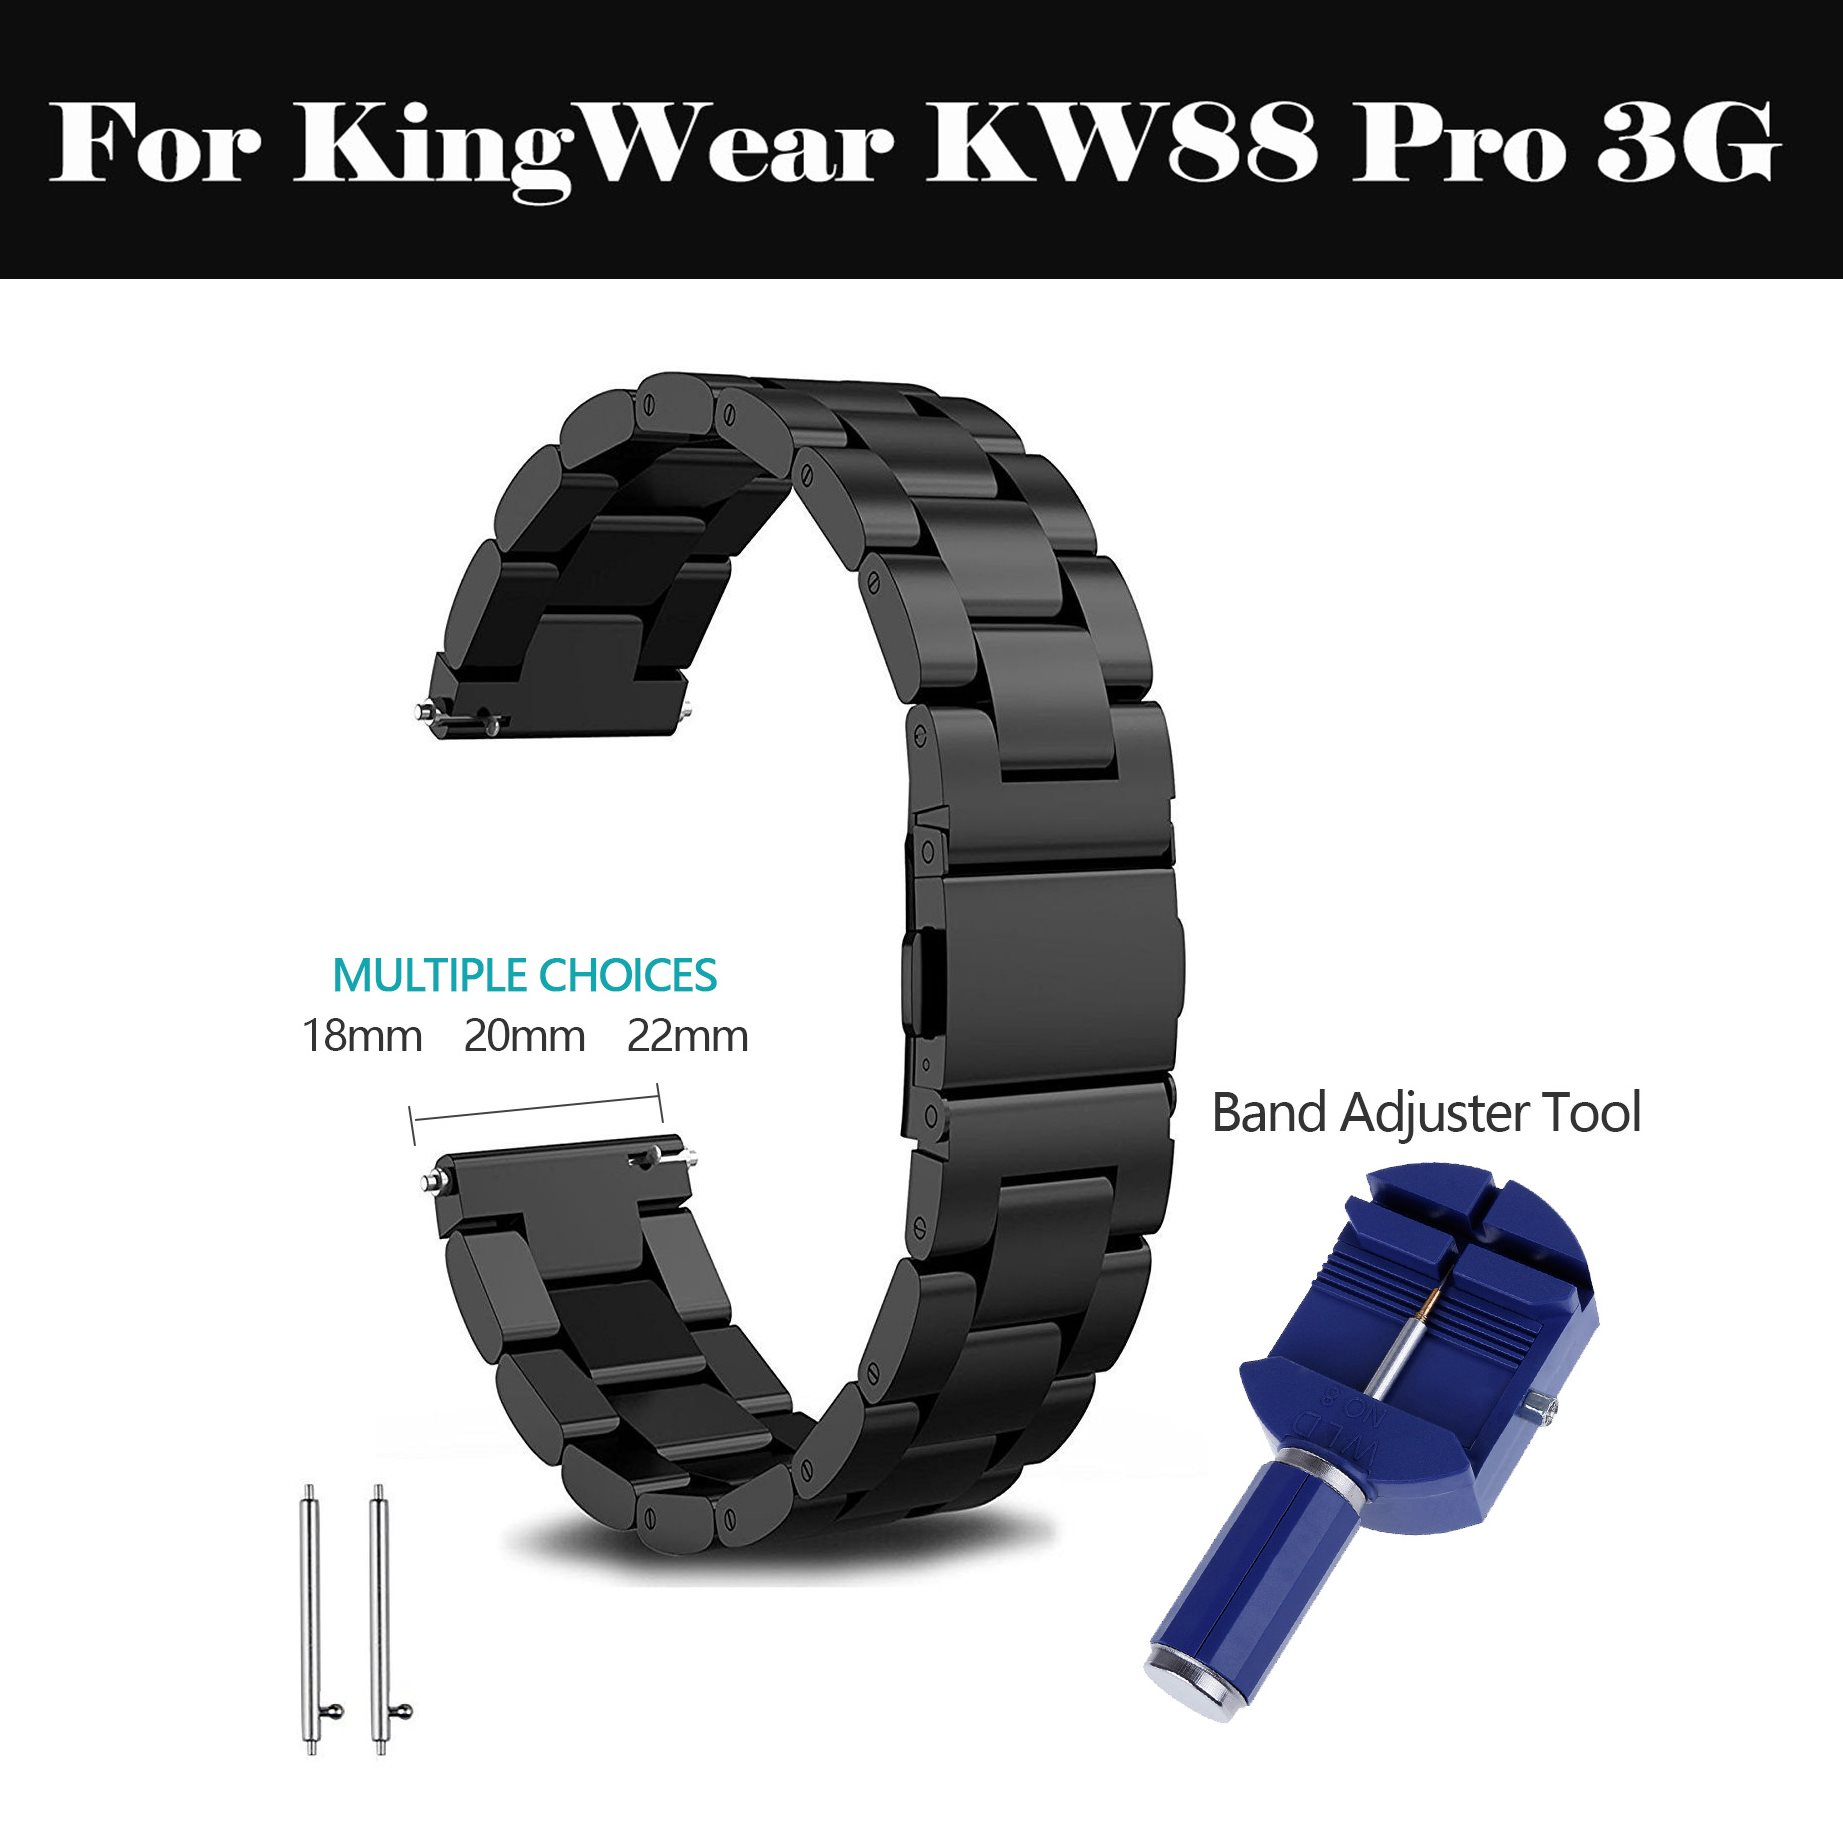 18mm 20mm 22mm Stainless Steel <font><b>Watch</b></font> <font><b>Band</b></font> Strap smart <font><b>watch</b></font> Link bracelet black For KingWear <font><b>KW88</b></font> Pro 3G image